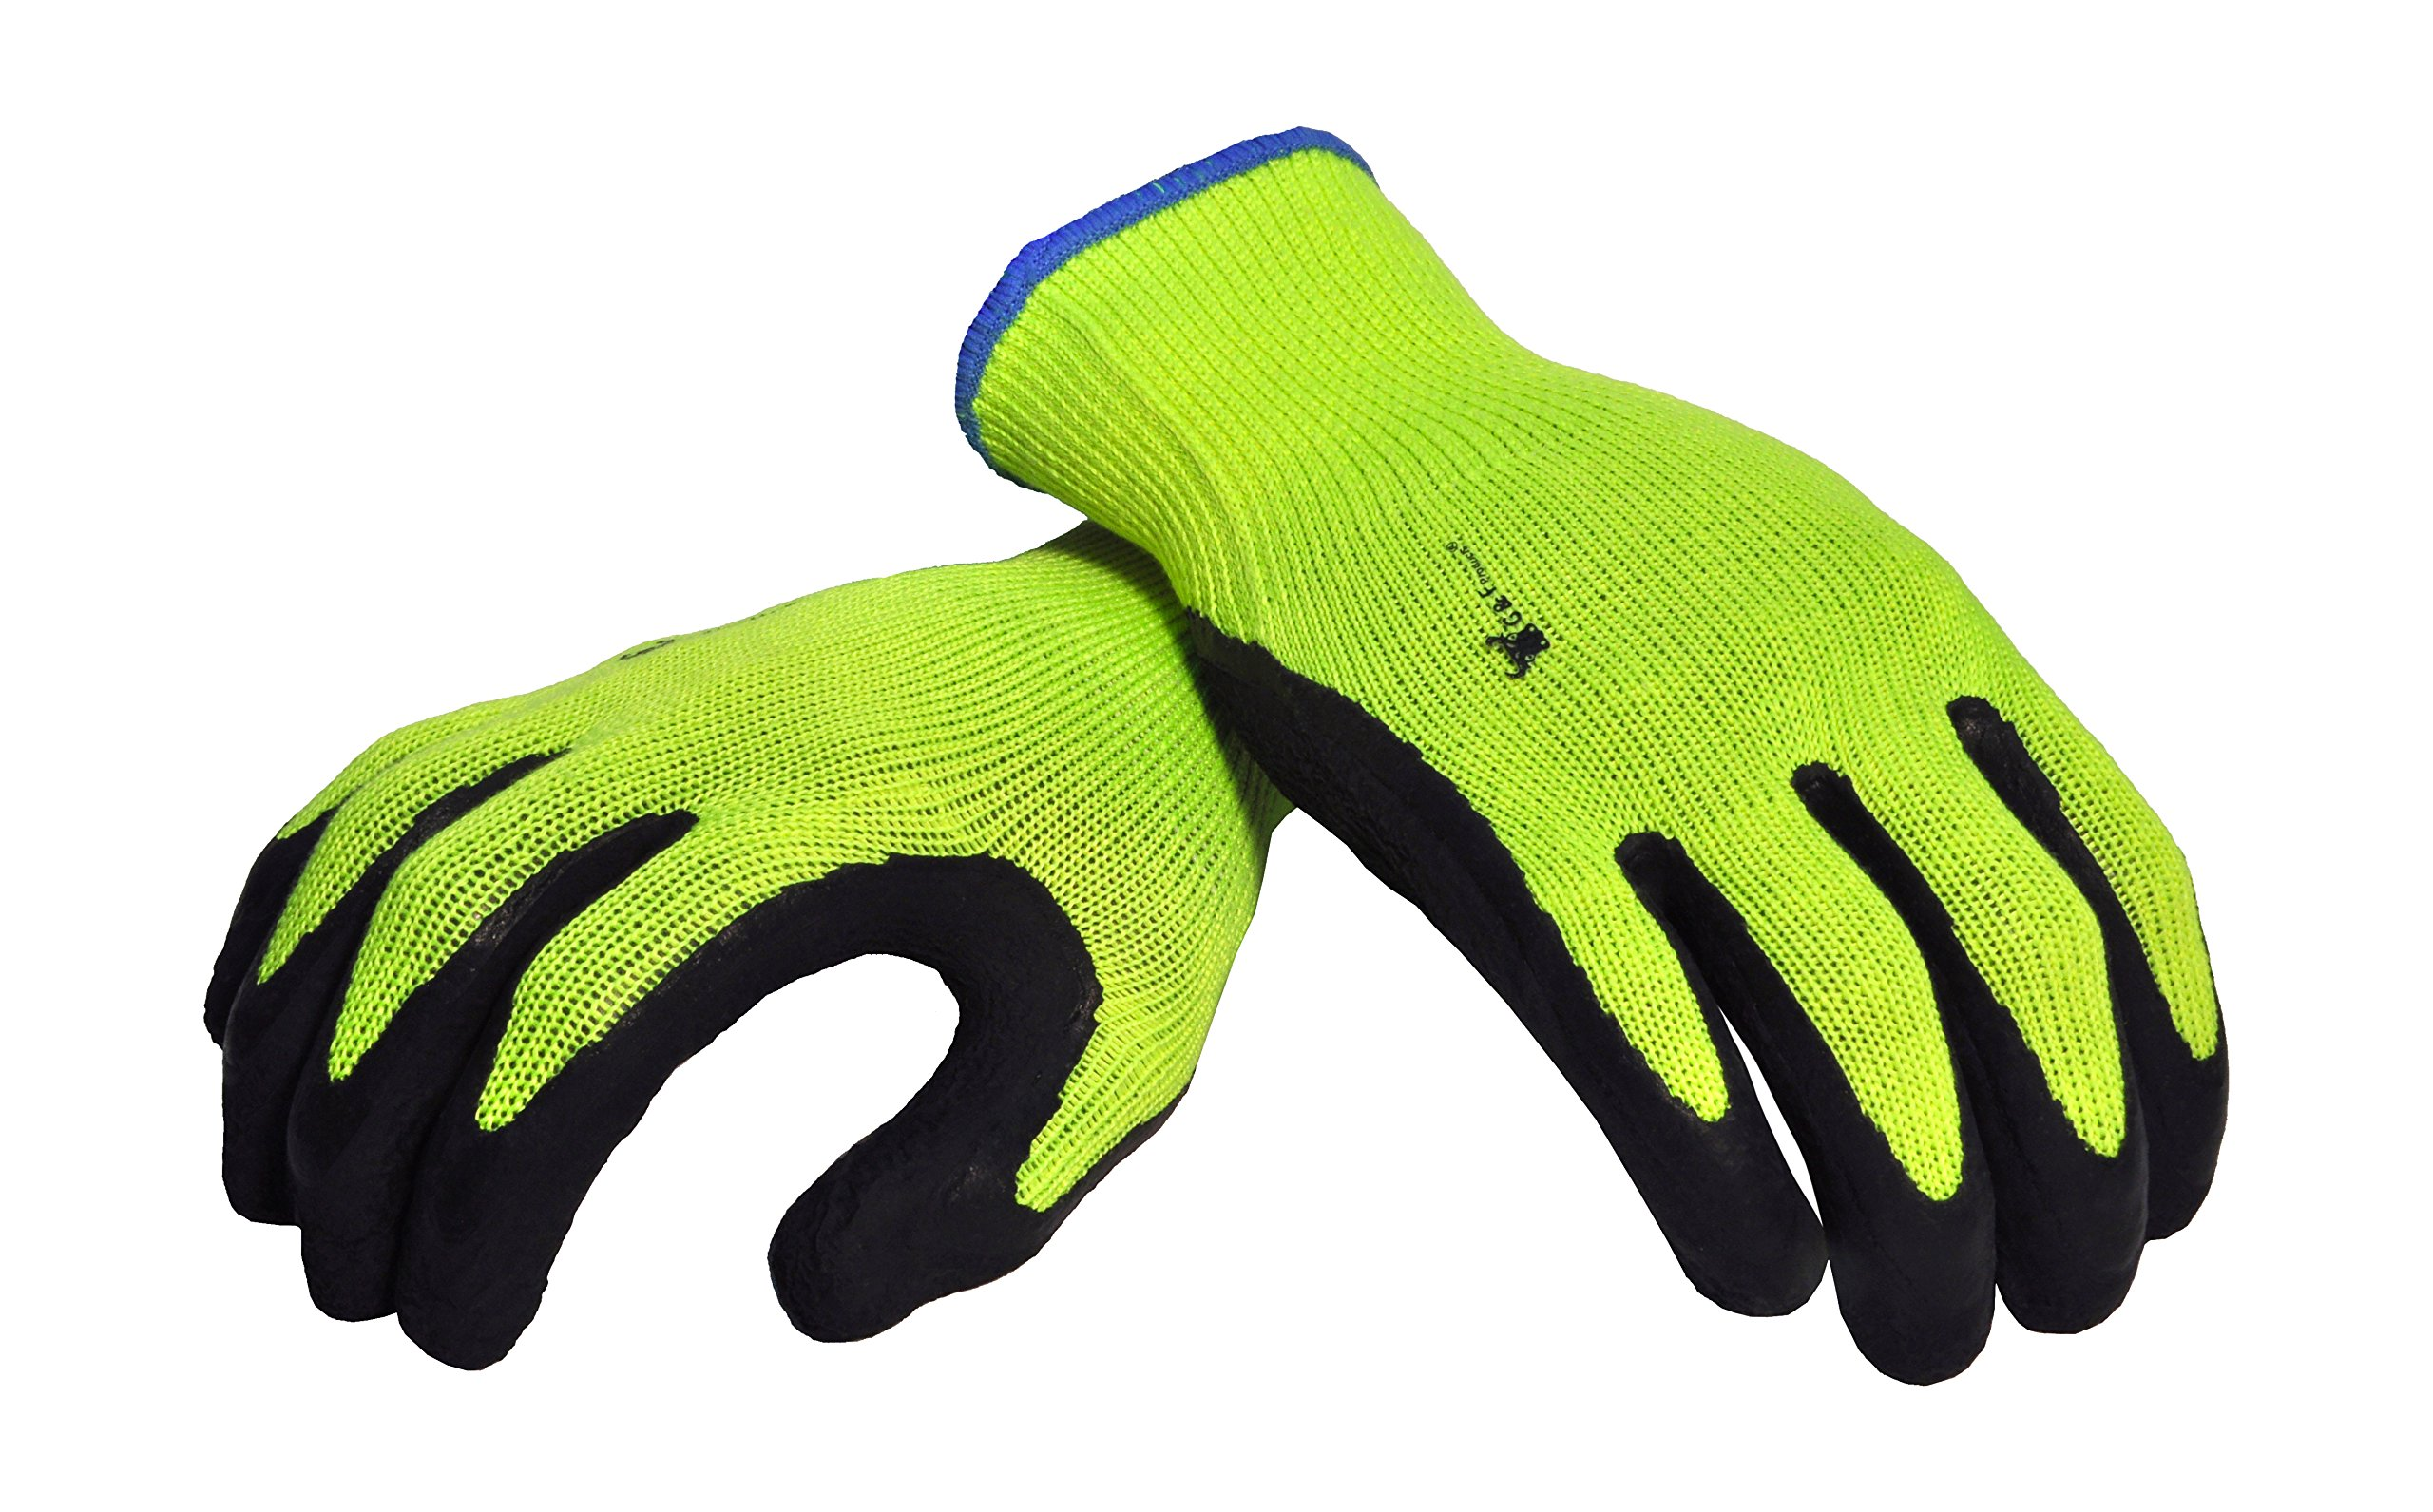 G & F 1516L-3 Premium High Visibility Work Gloves for General Purpose, MicroFoam Double Textured Latex Coated Work Gloves, Garden Gloves, Men and Women Work Gloves, Large, 3 Pair Pack